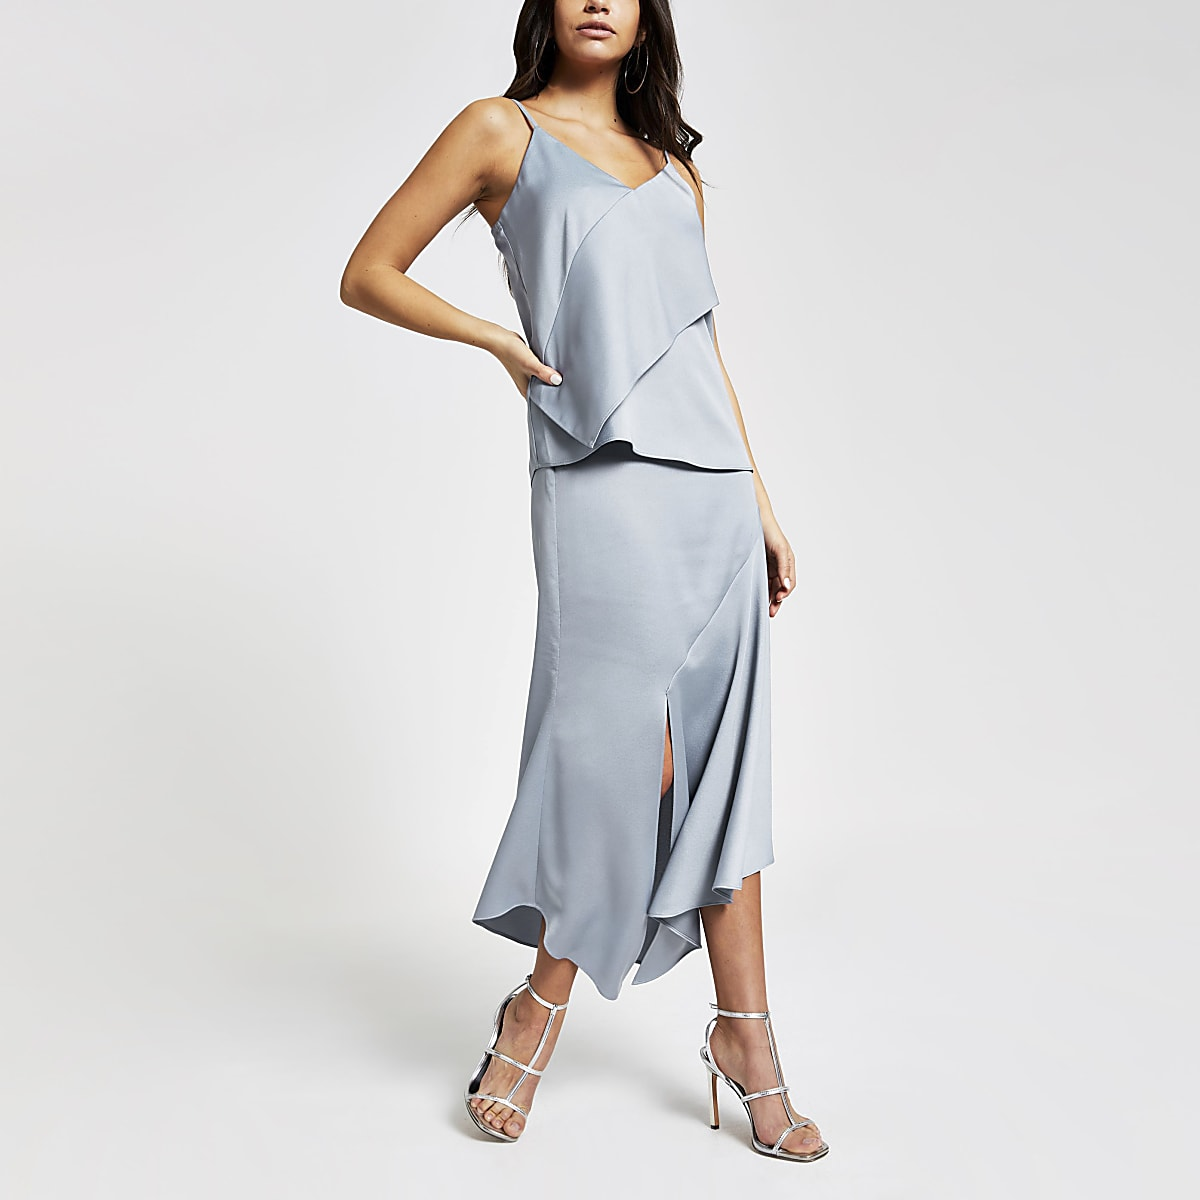 Blue satin asymmetric midi skirt